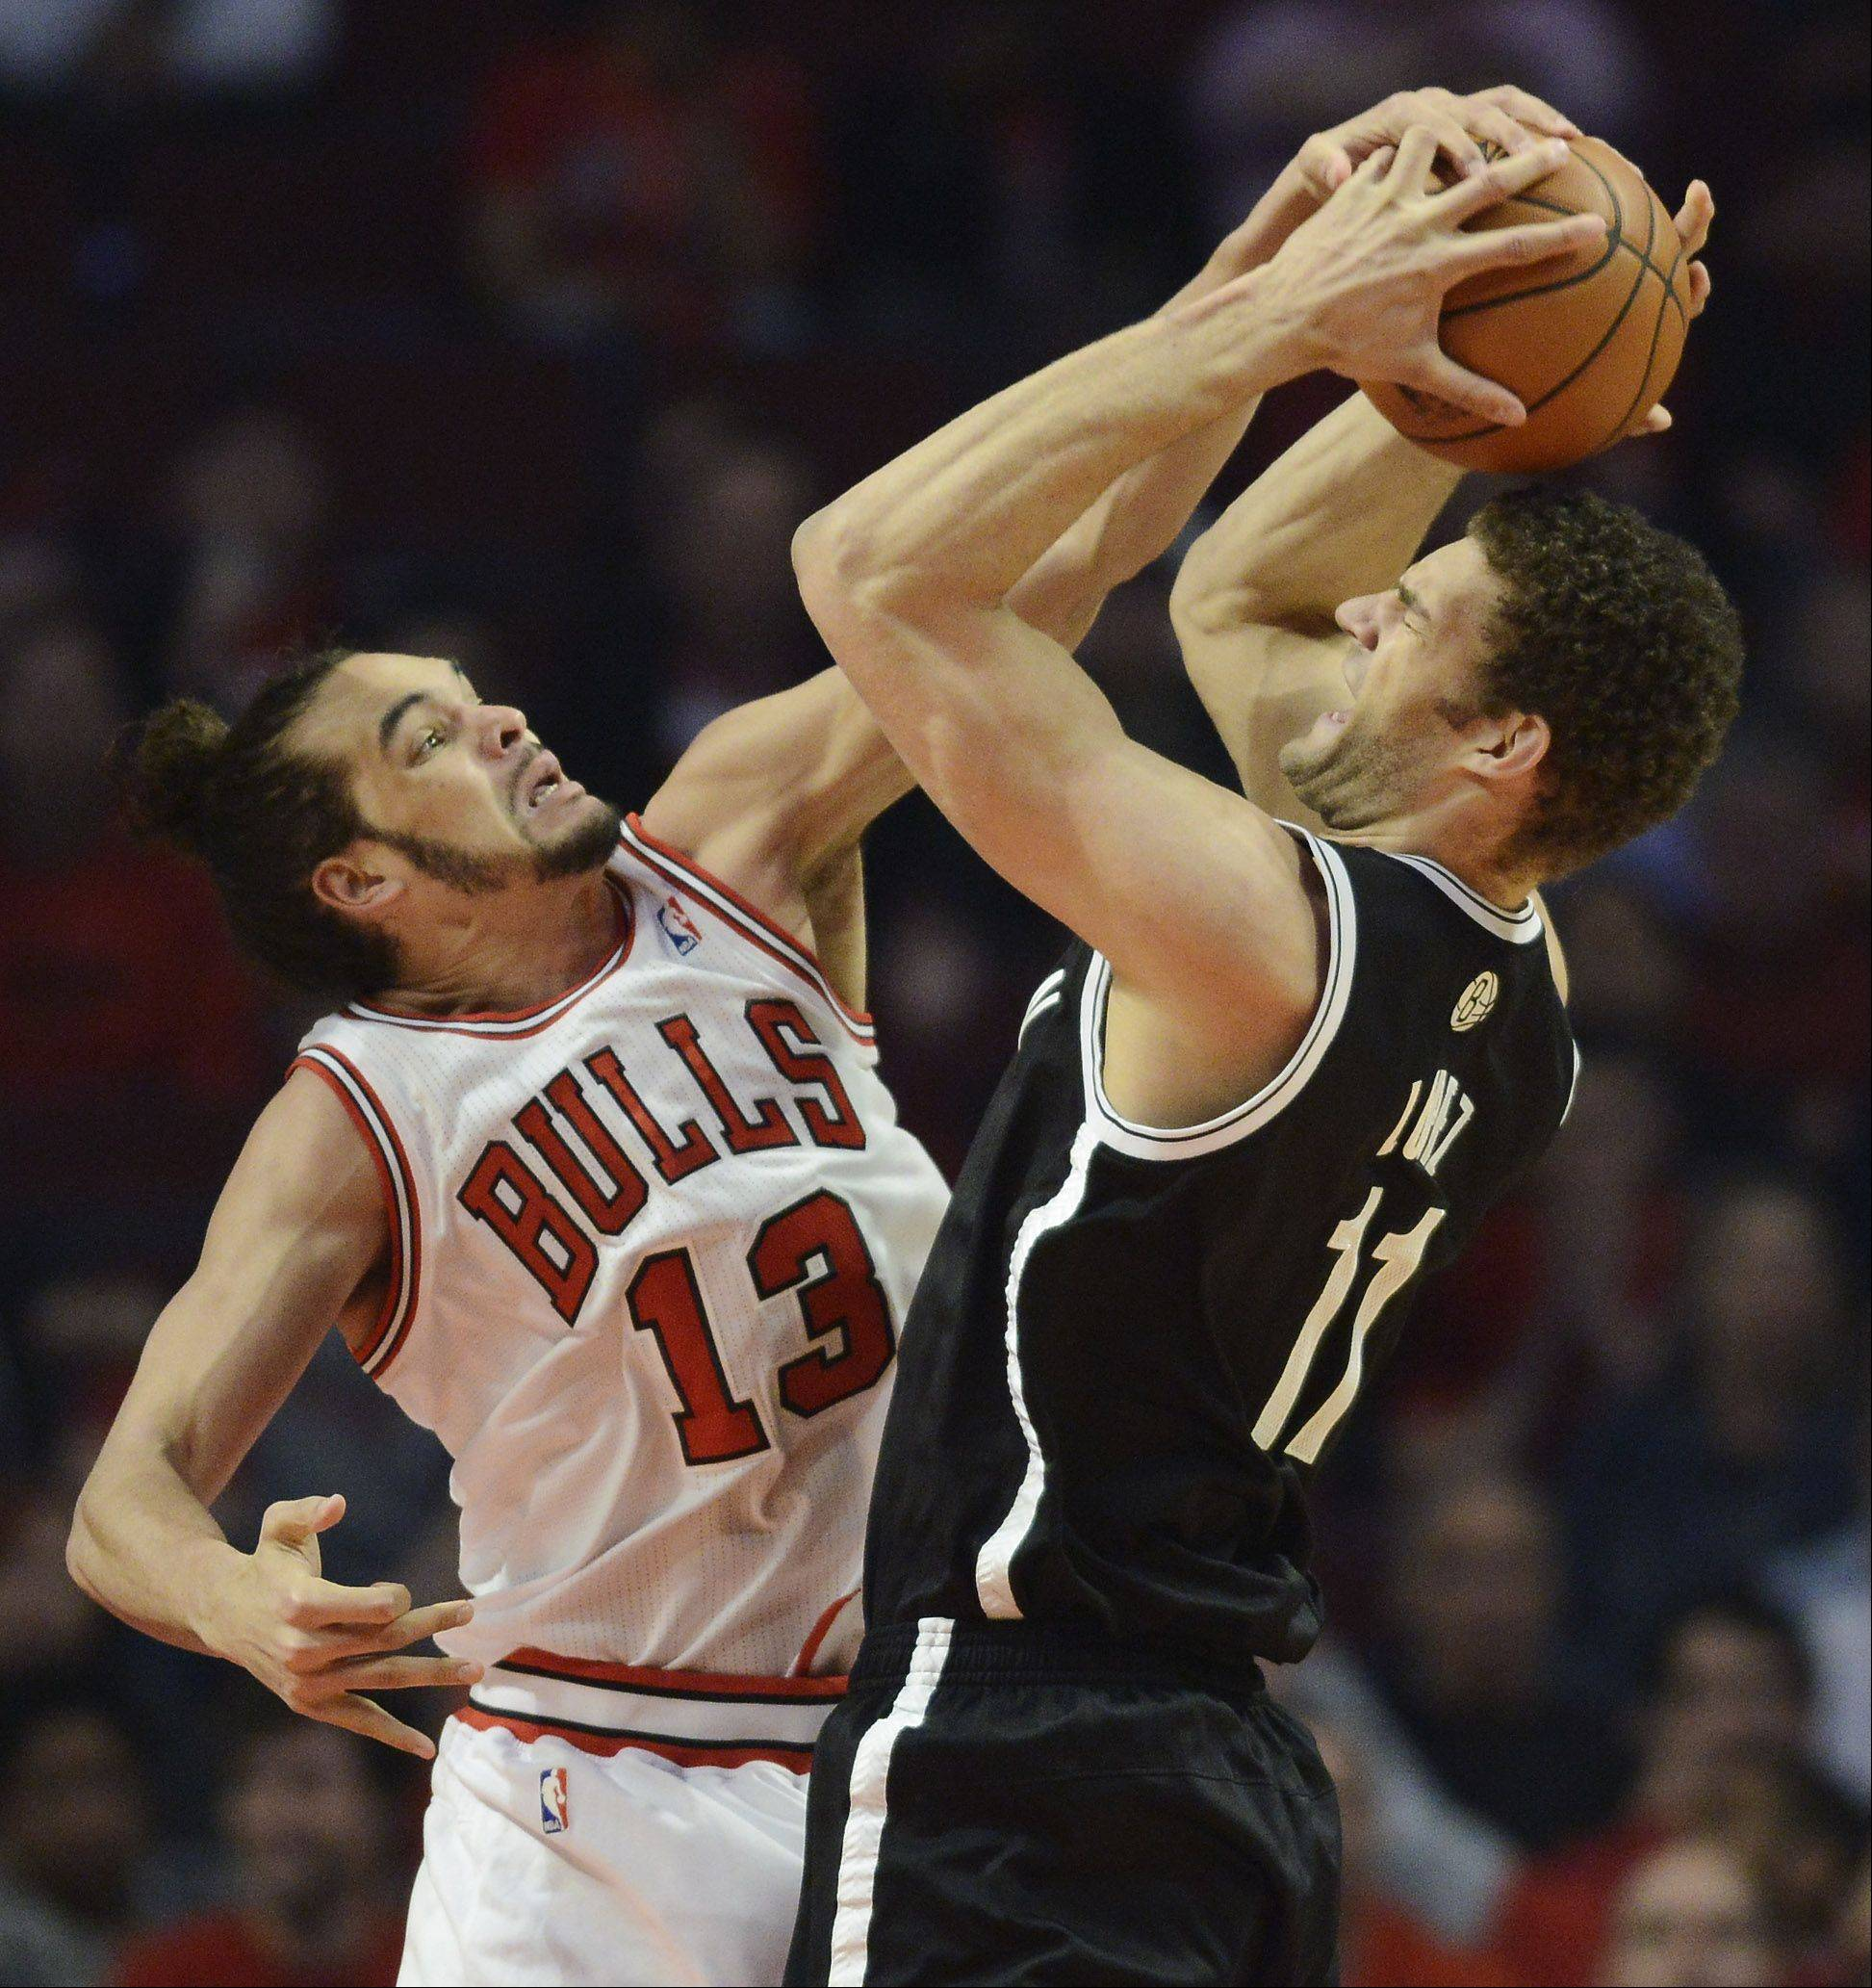 Joakim Noah of the Chicago Bulls ties up Brook Lopez of the Brooklyn Nets during the first quarter in Game 6 of the first round playoff game at the United Center in Chicago, Thursday, May 2, 2013.